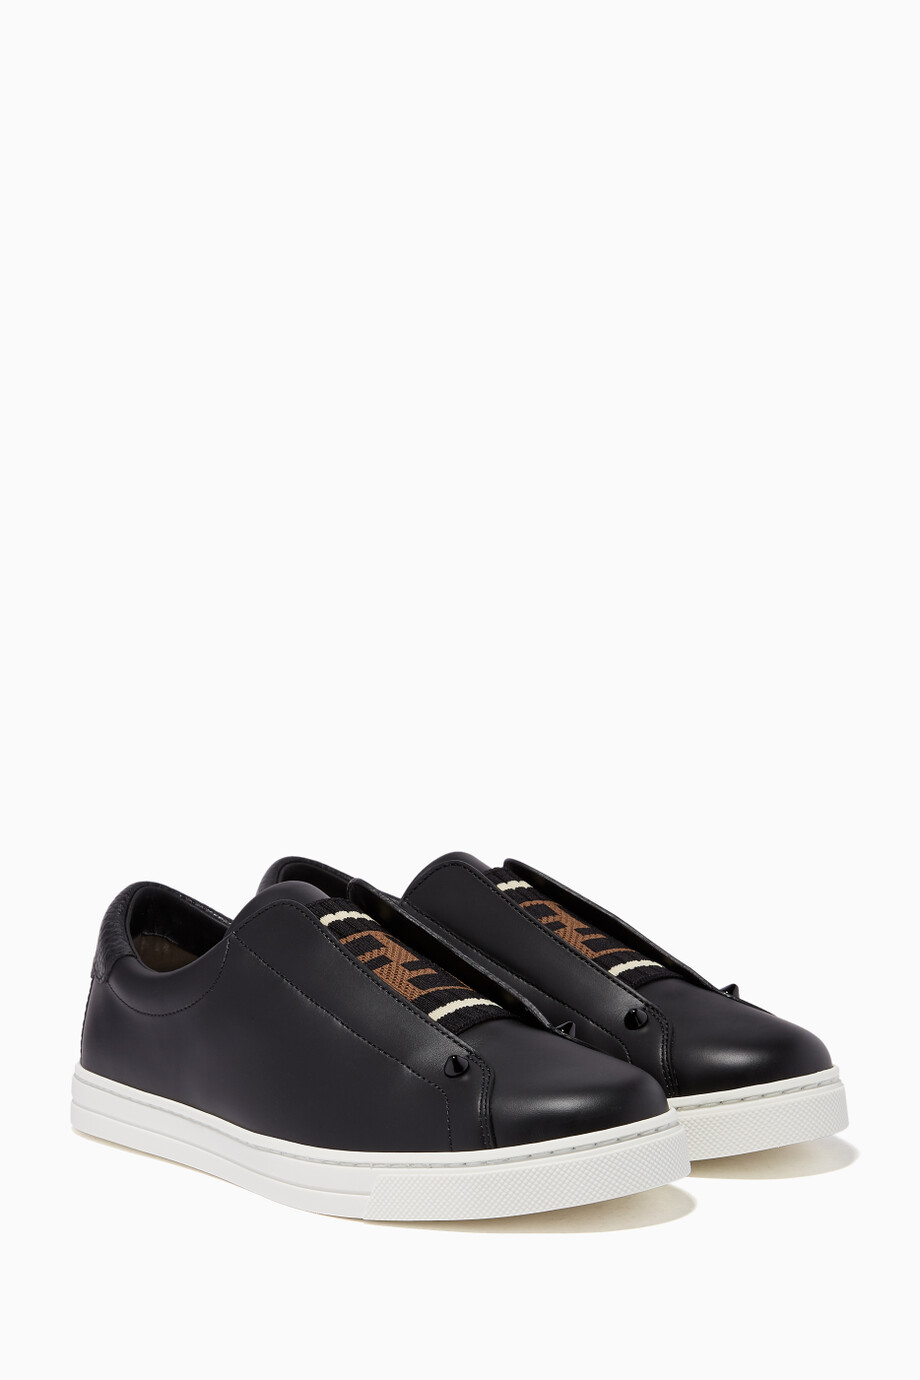 1ac4a4d368 Shop Fendi Black Black Leather Slip-on Sneakers for Women | Ounass UAE